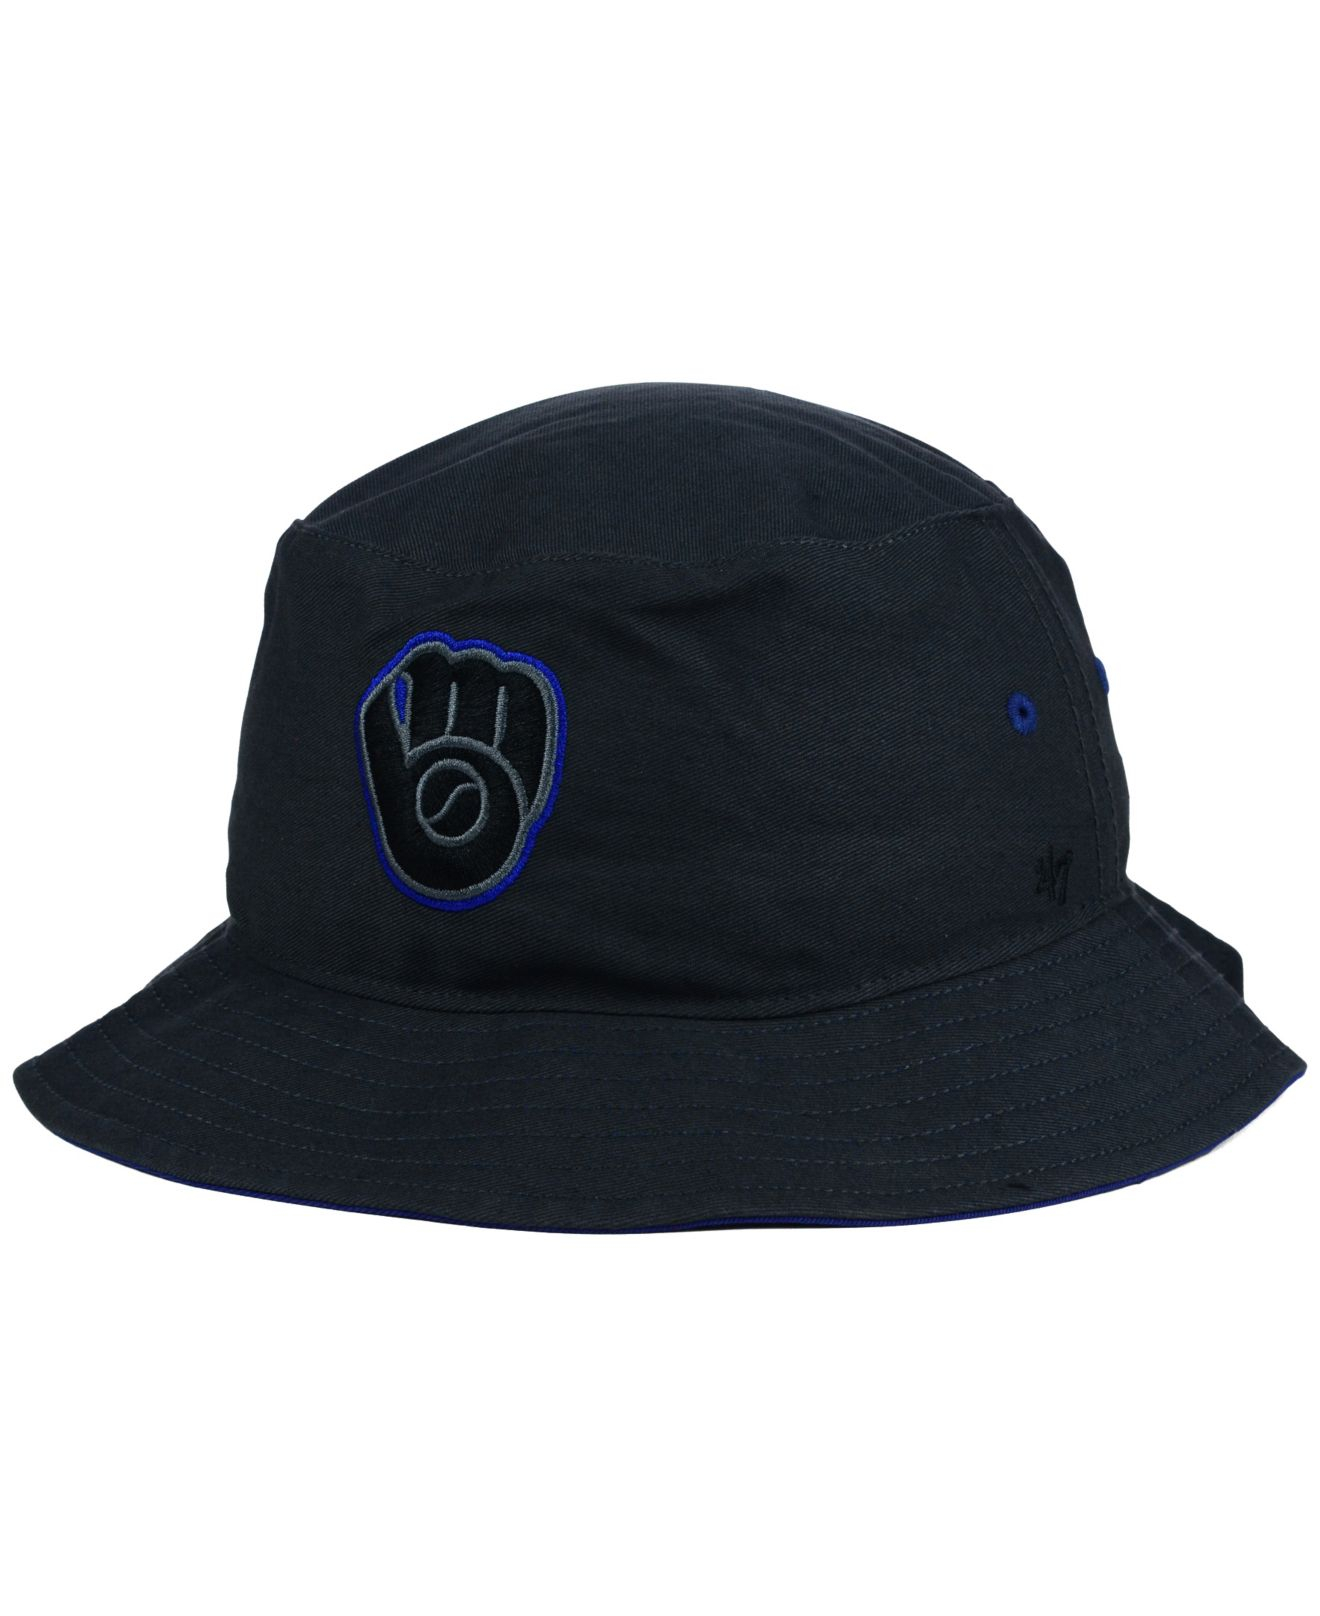 Lyst - 47 Brand Milwaukee Brewers Turbo Bucket Hat in Gray 0acdcaf3689